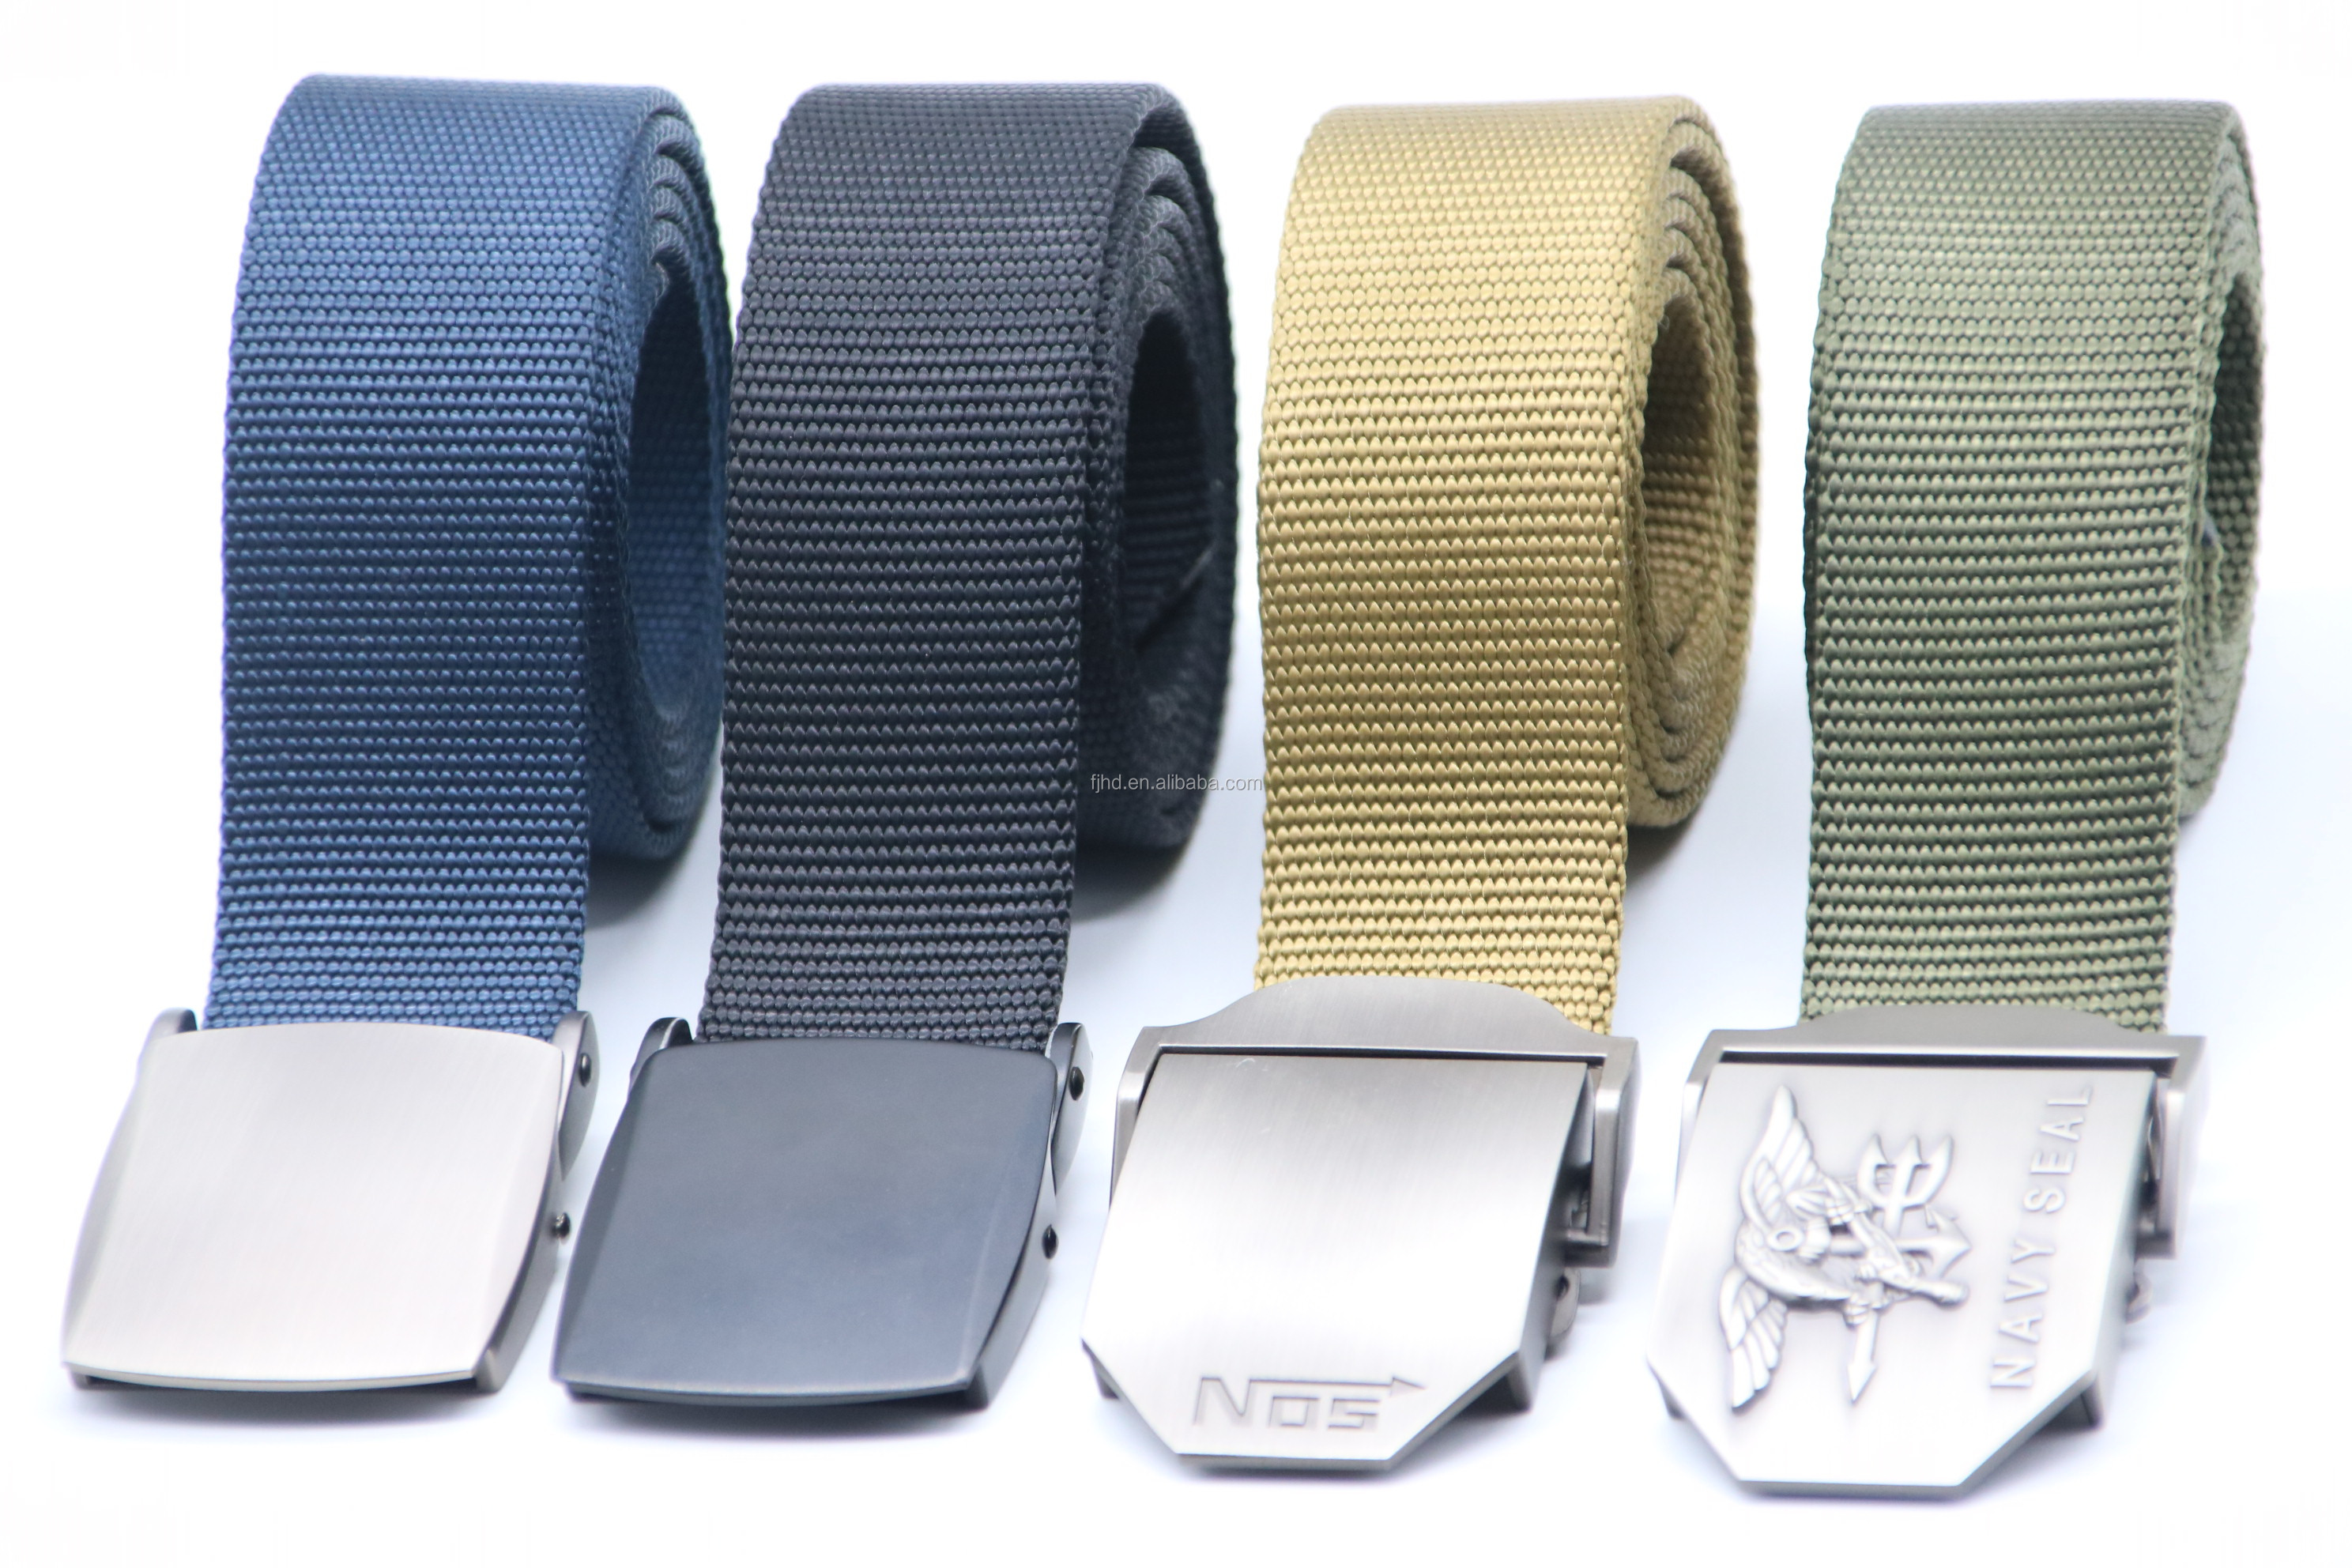 Fashion 100% Nylon Tactical Web Belt with Alloy Metal Buckle